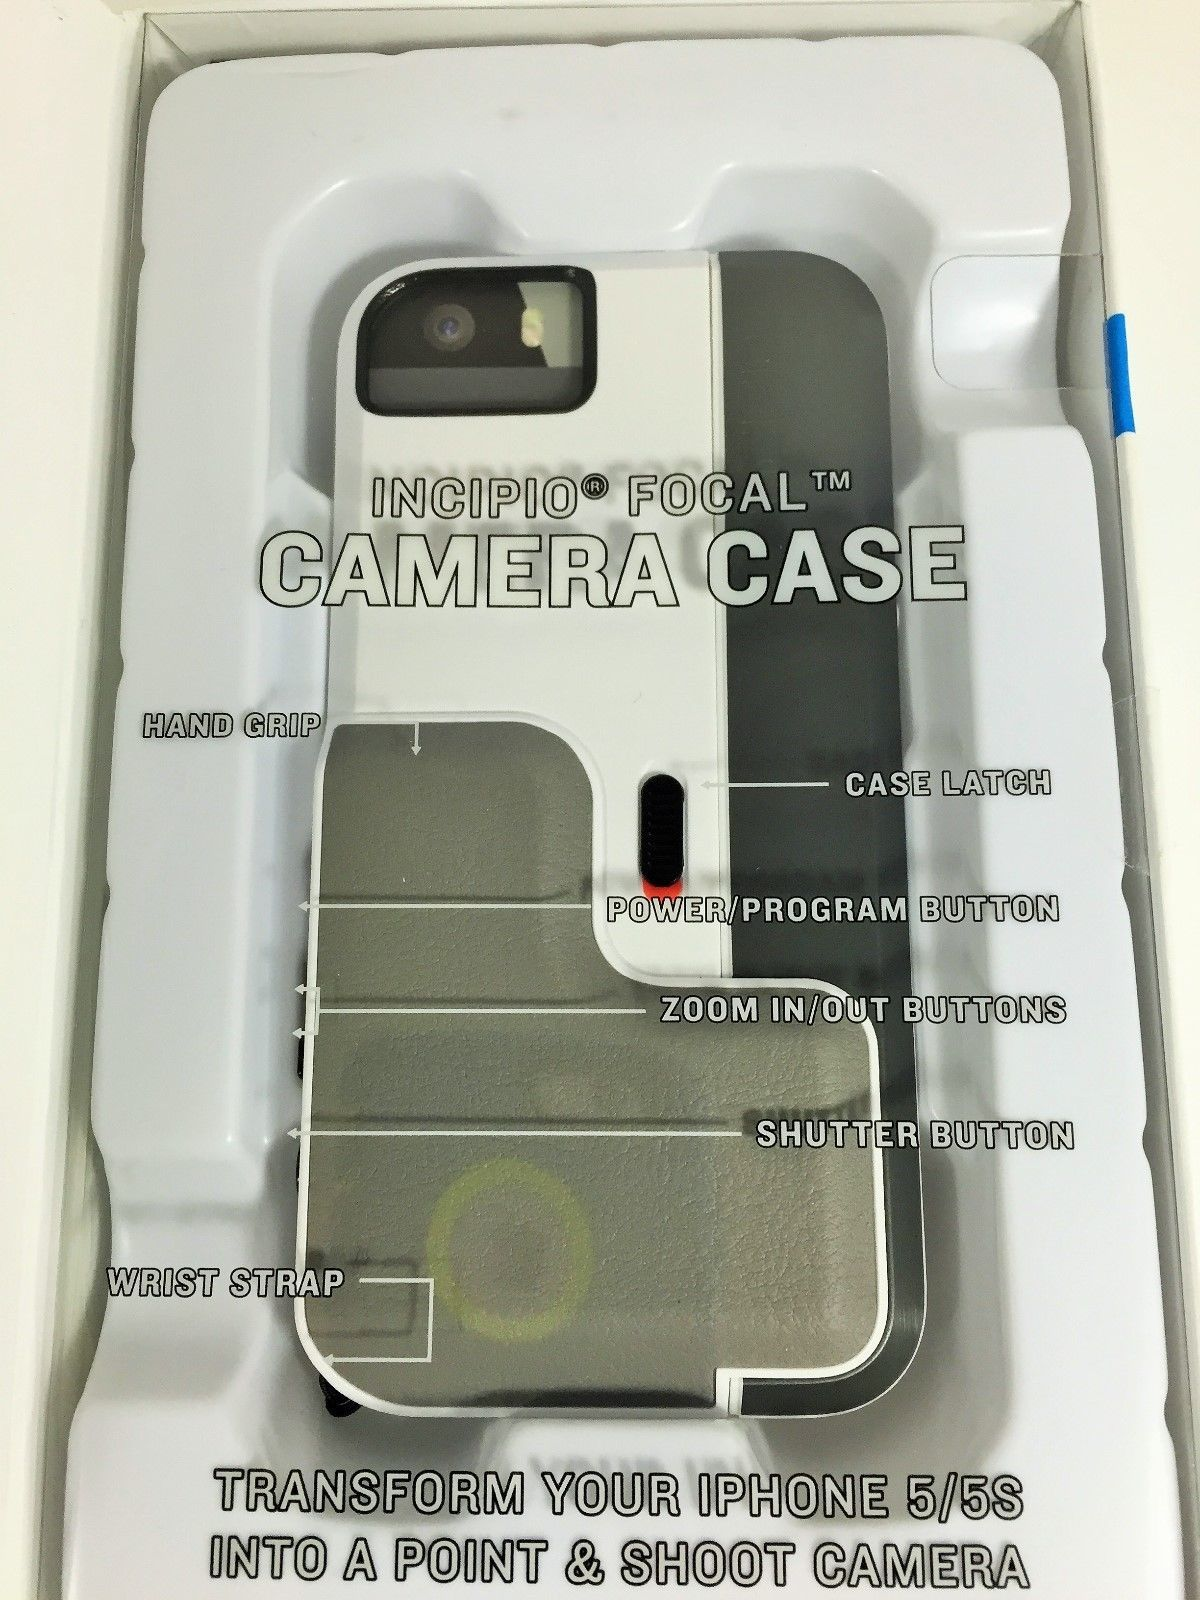 Incipio Focal Bluetooth Low Energy  Camera Case for iPhone 5/5s - White